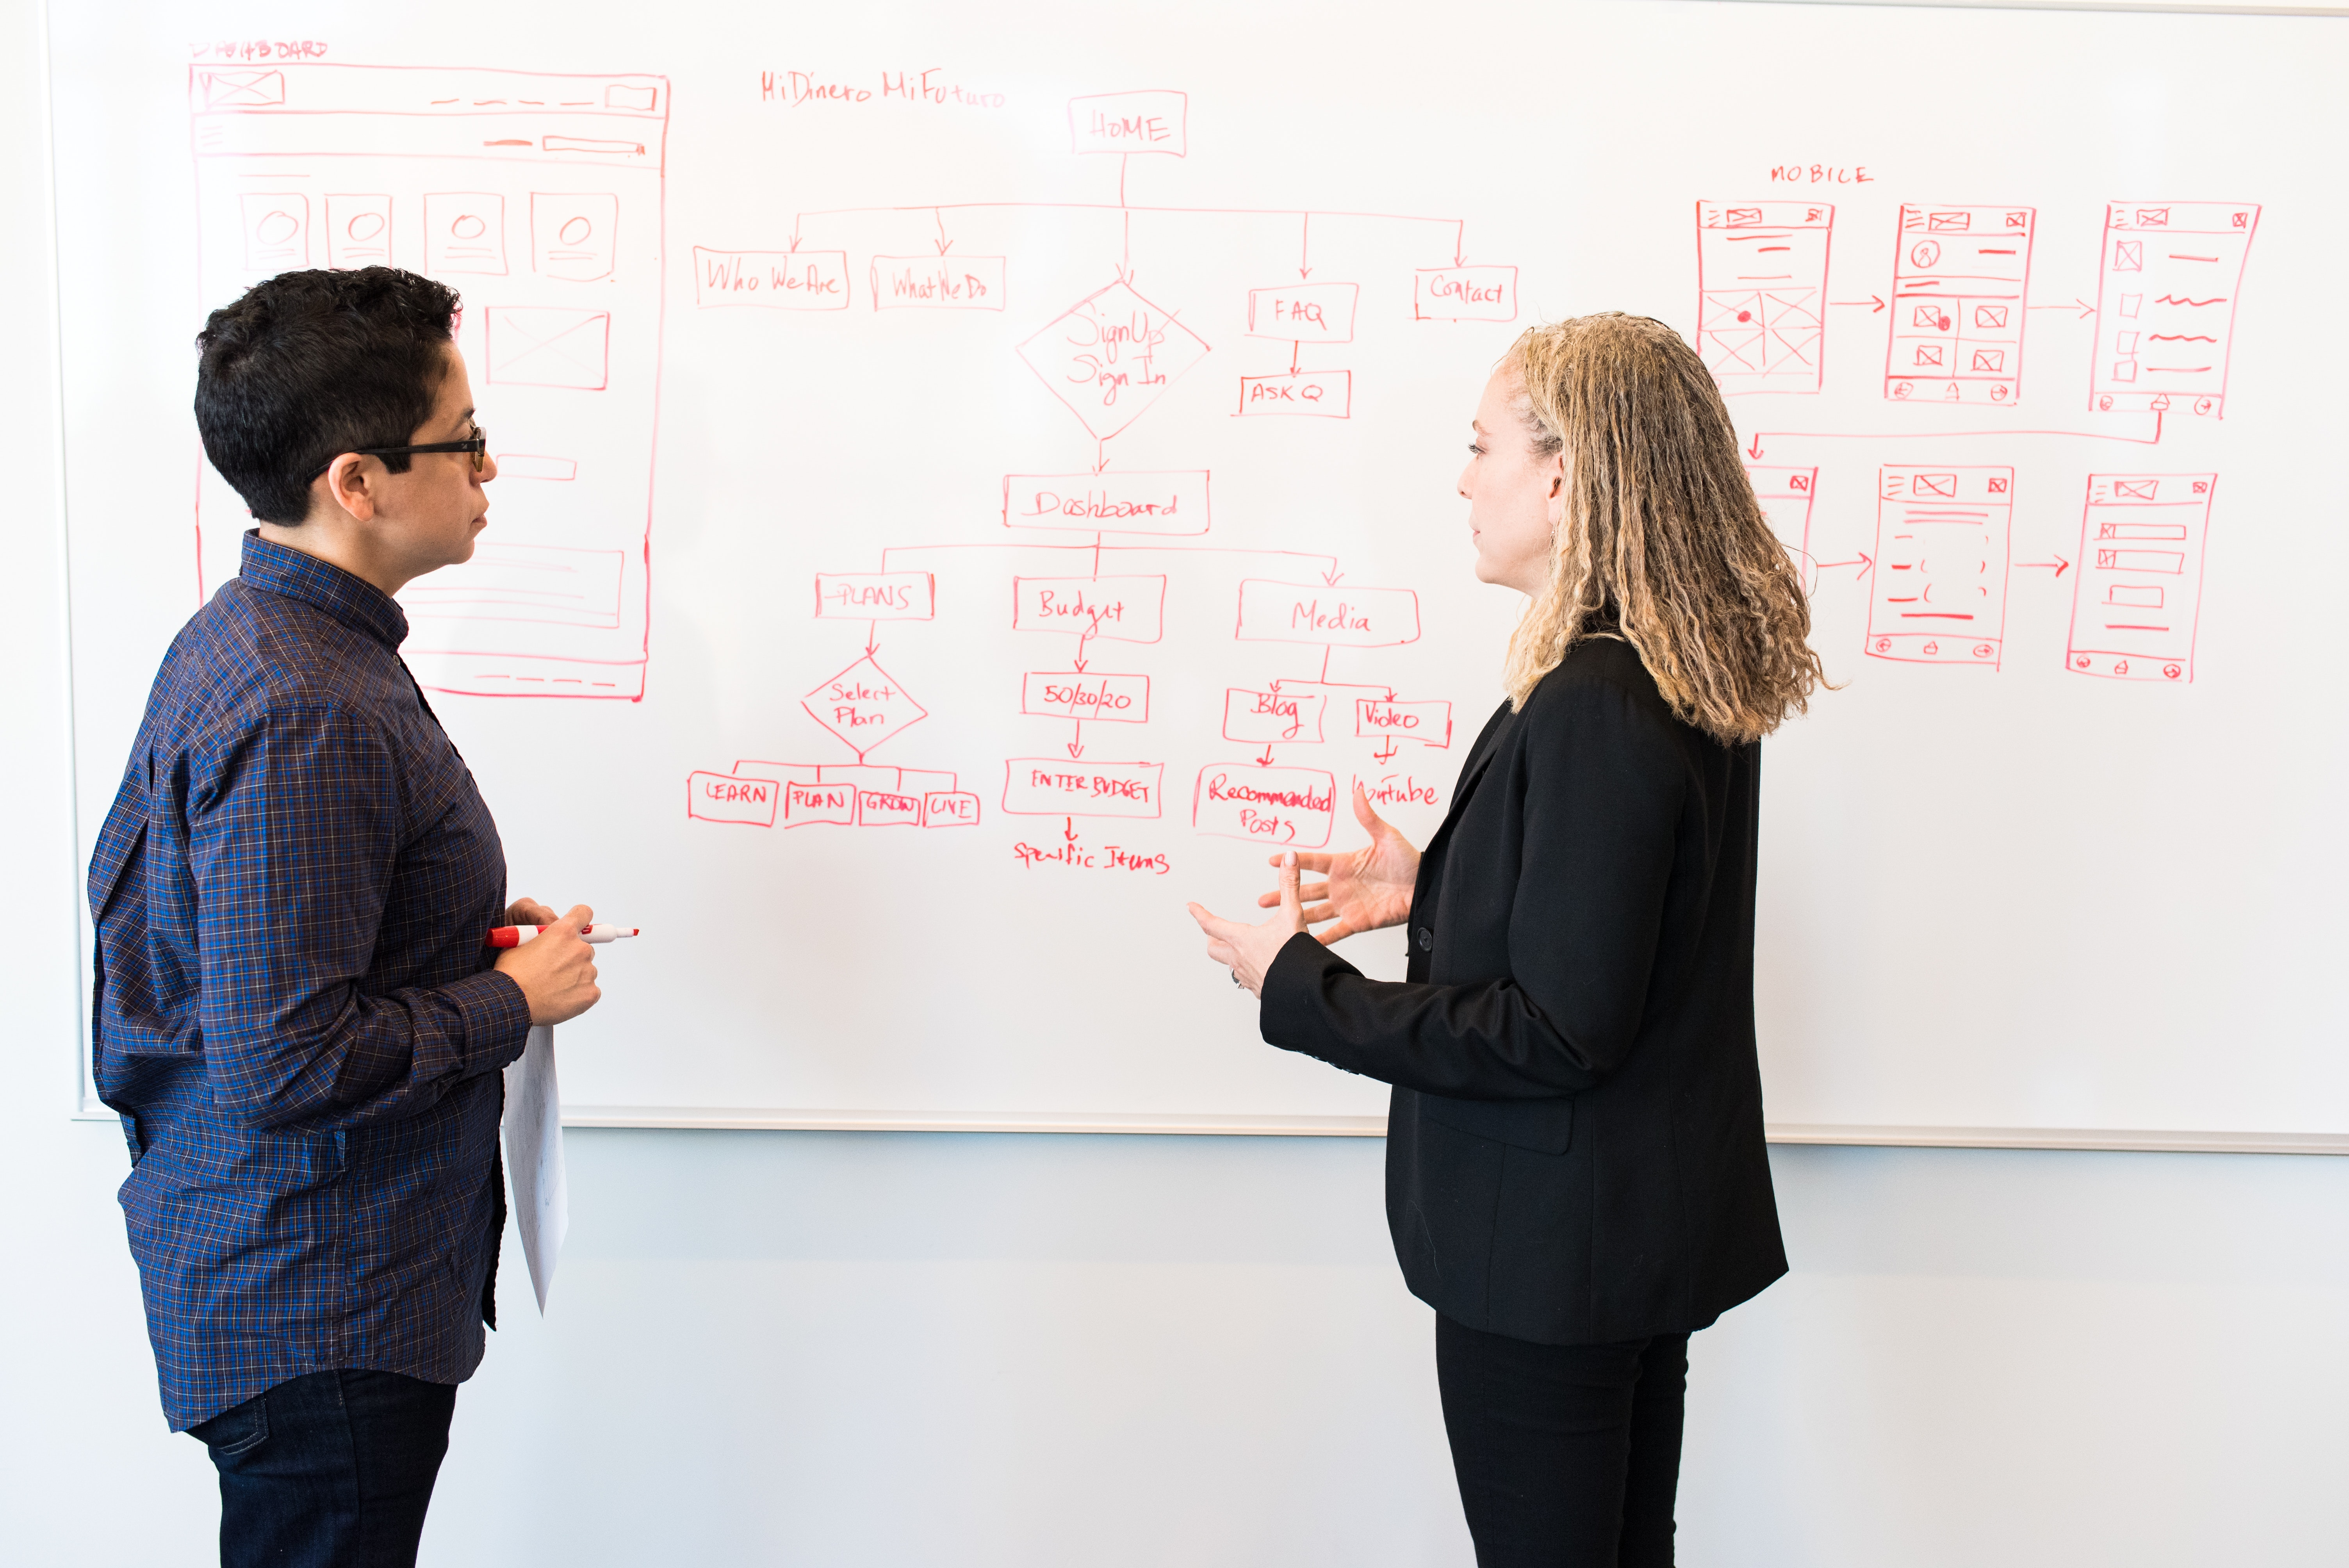 Two people discussing a system architecture diagram at a whiteboard